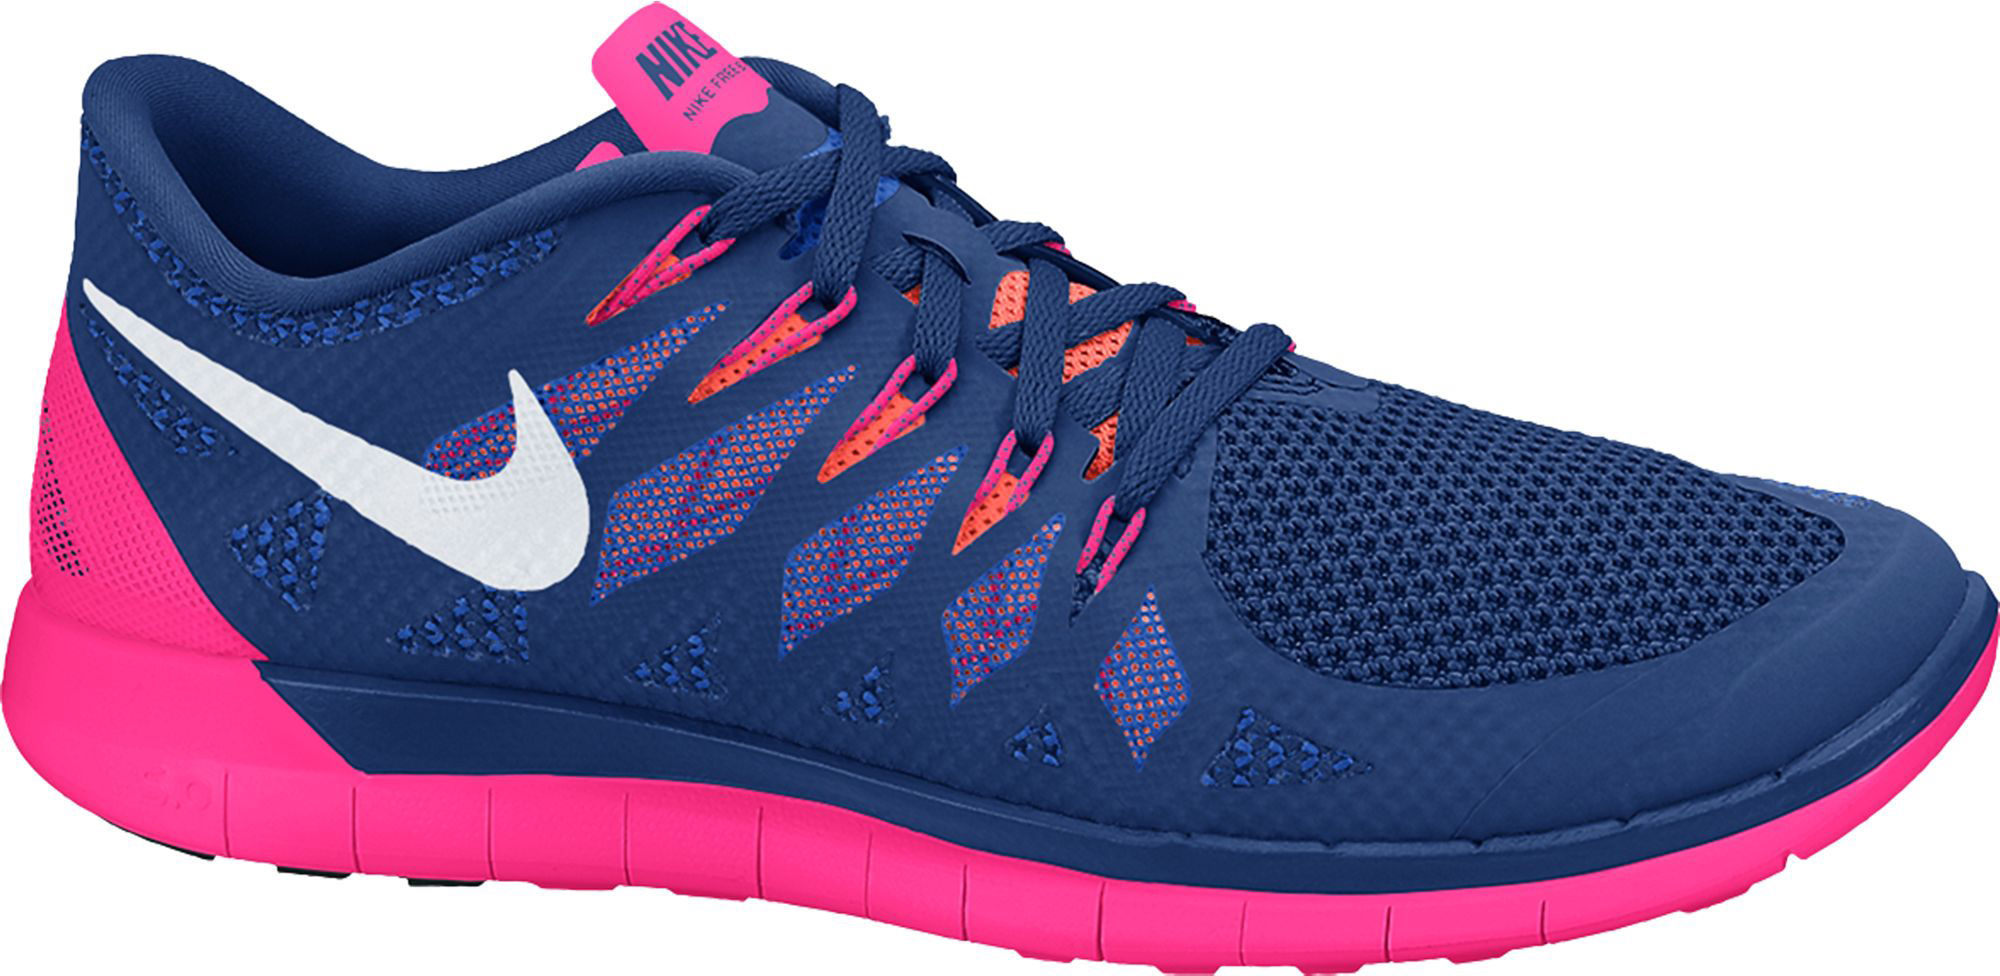 finest selection edc61 603c2 nike free 5.0 blue pink